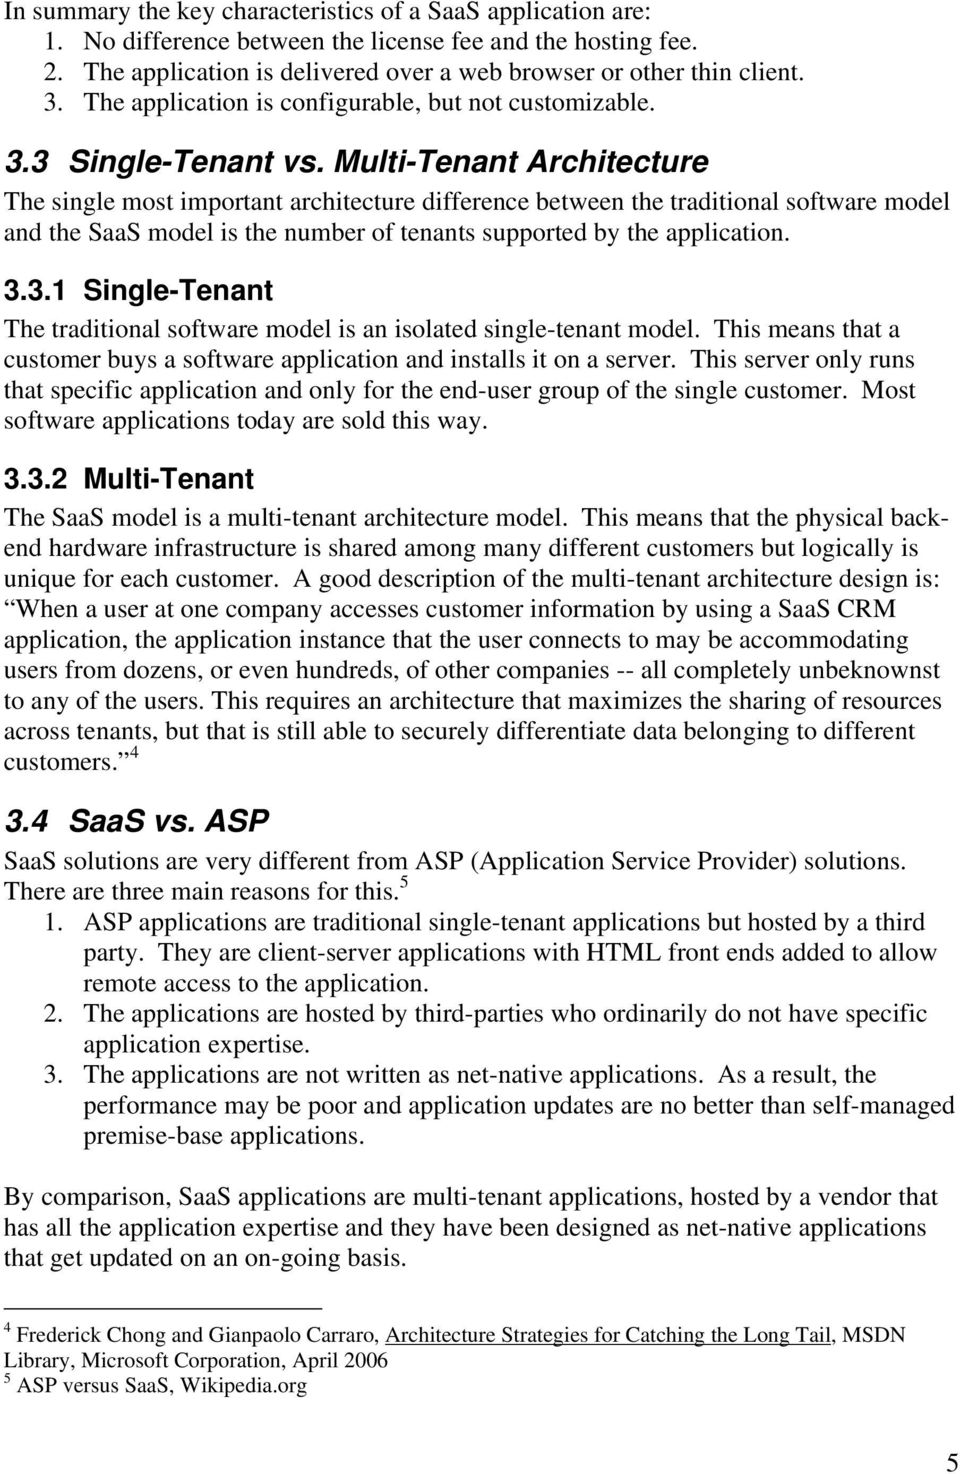 Multi-Tenant Architecture The single most important architecture difference between the traditional software model and the SaaS model is the number of tenants supported by the application. 3.